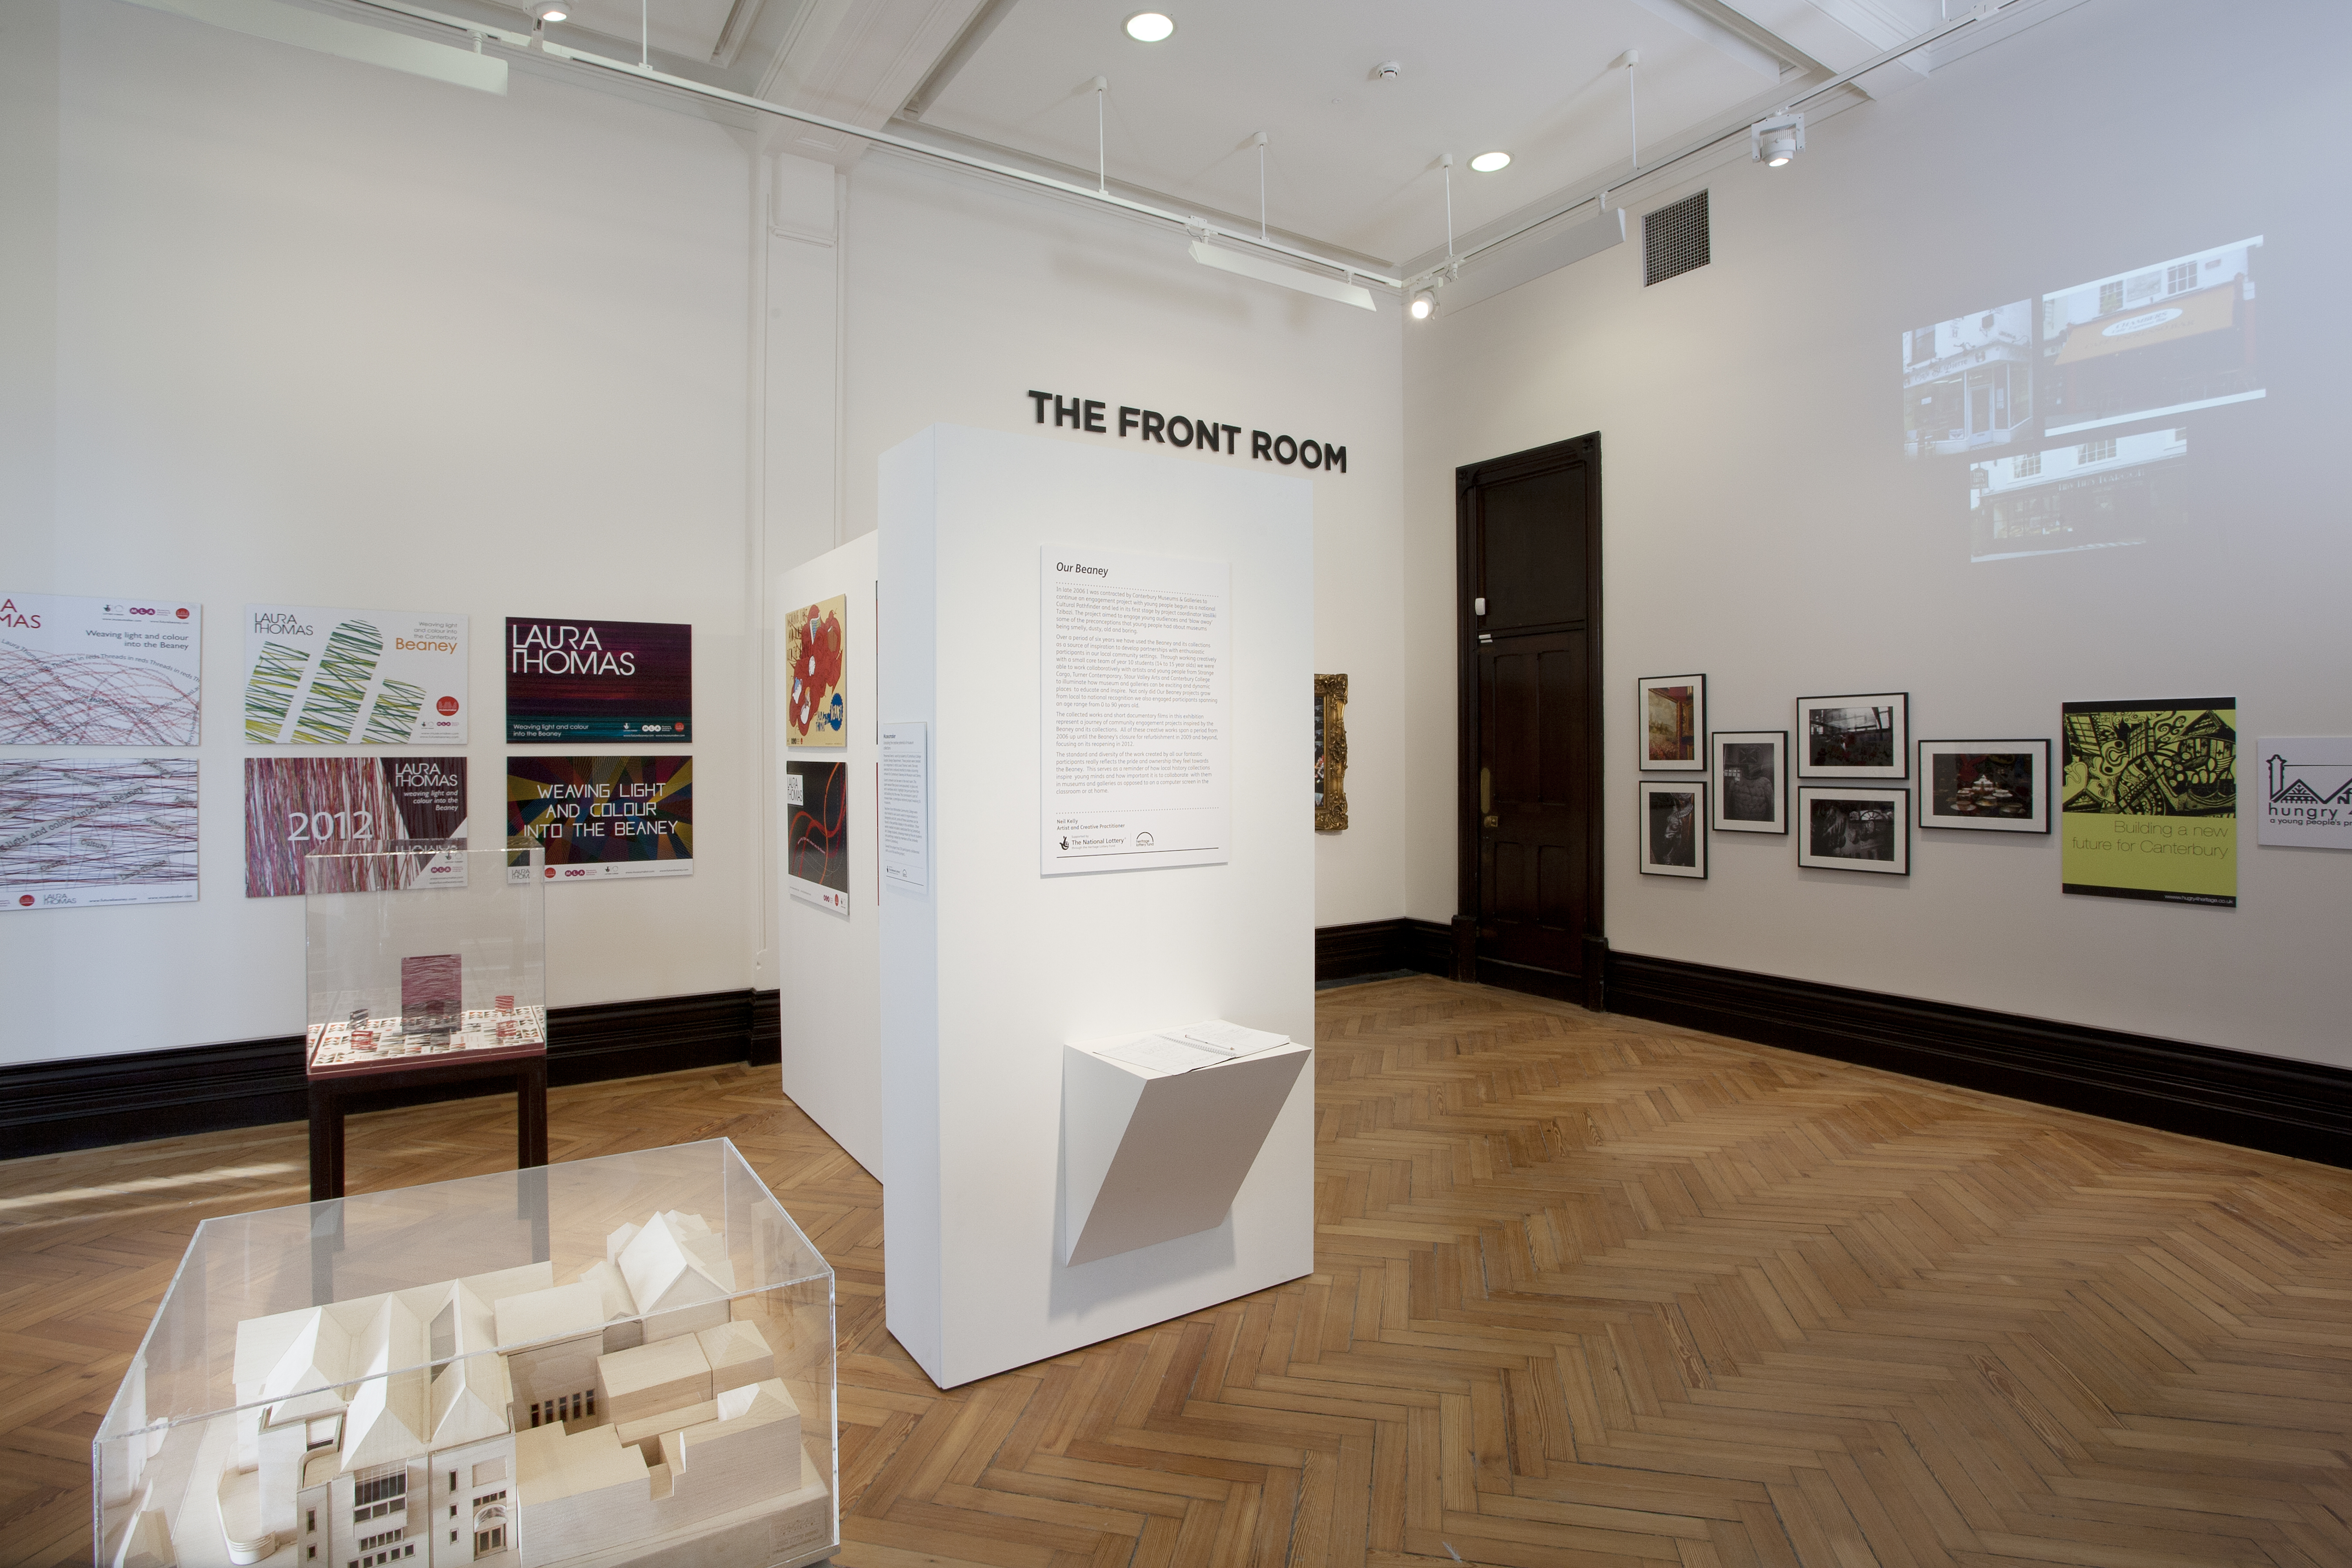 The Front Room Gallery at The Beaney